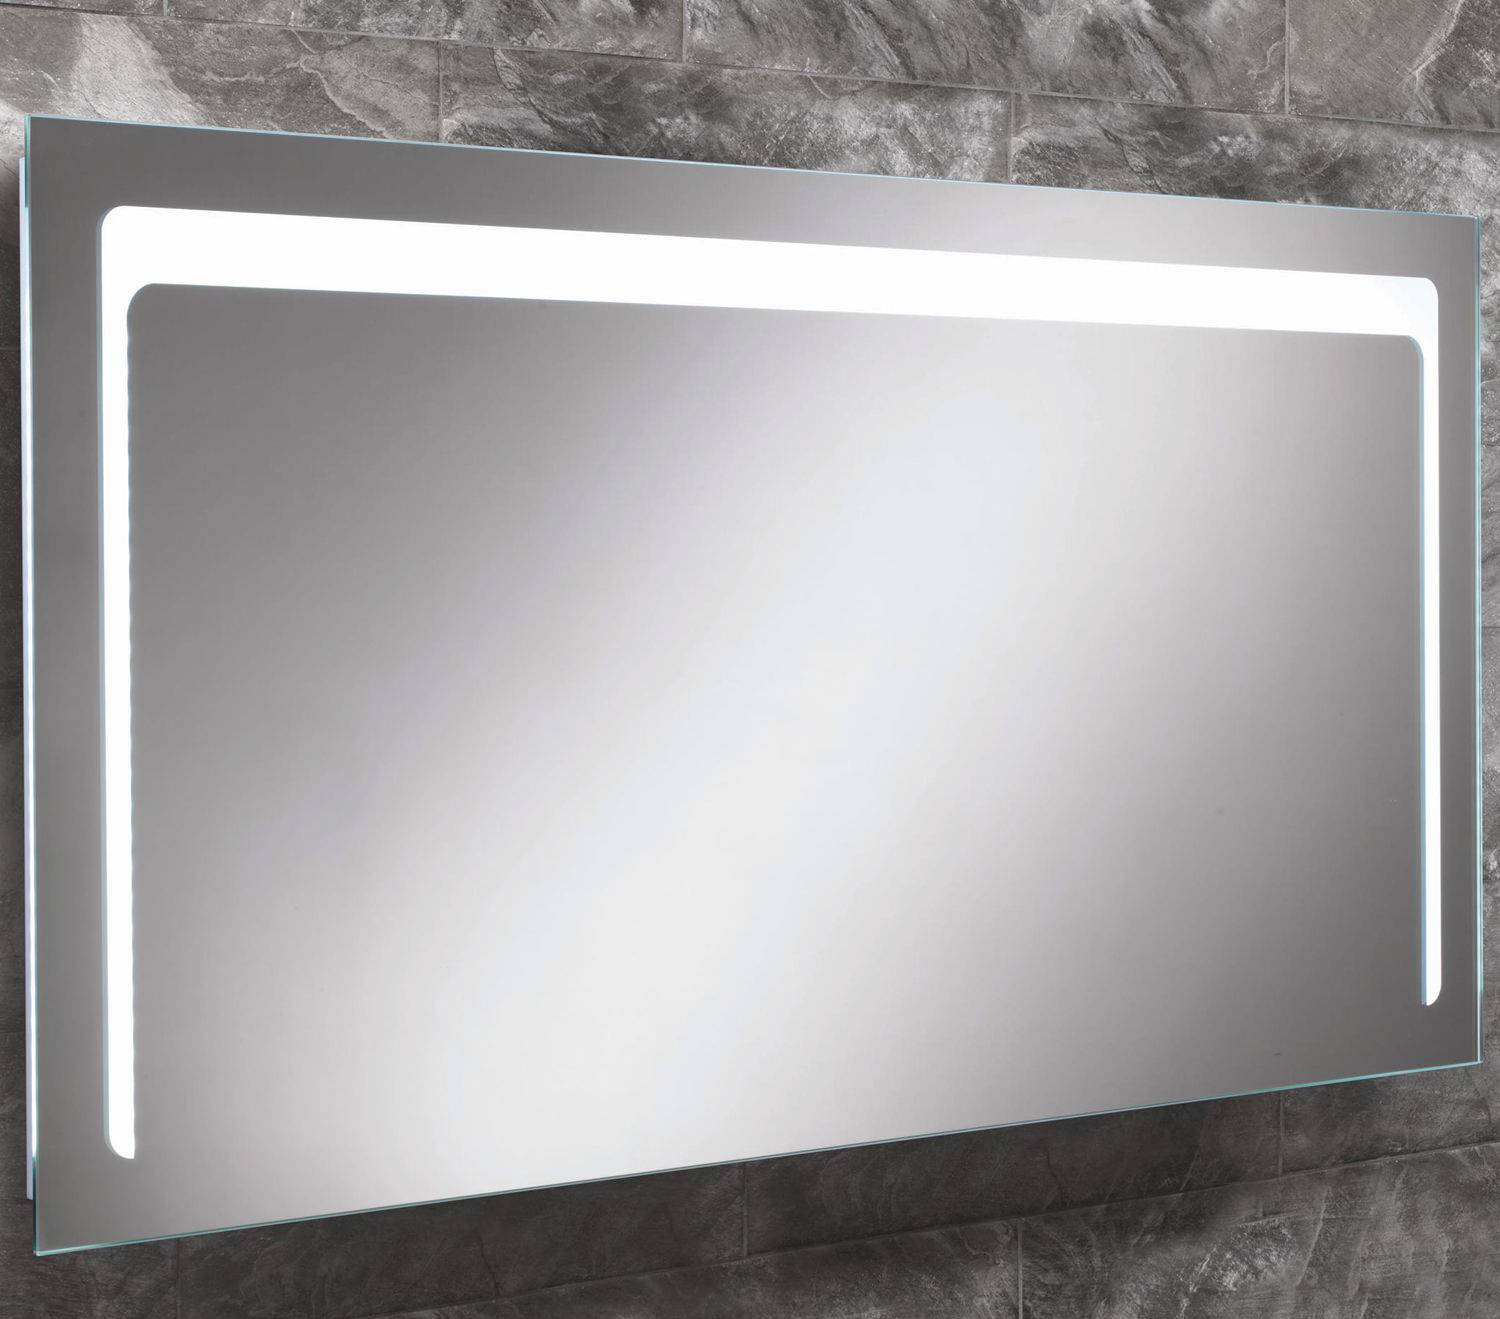 Luxury An Illuminated Bathroom Mirror Or Cabinet Is An Emerging Fashion Trend That Will Last Many Of Us Have A Conventional Bathroom With White Wooden Cabinets, Flat Mirrors Above The Basin With Down Lights Although These Are Perfectly Fine